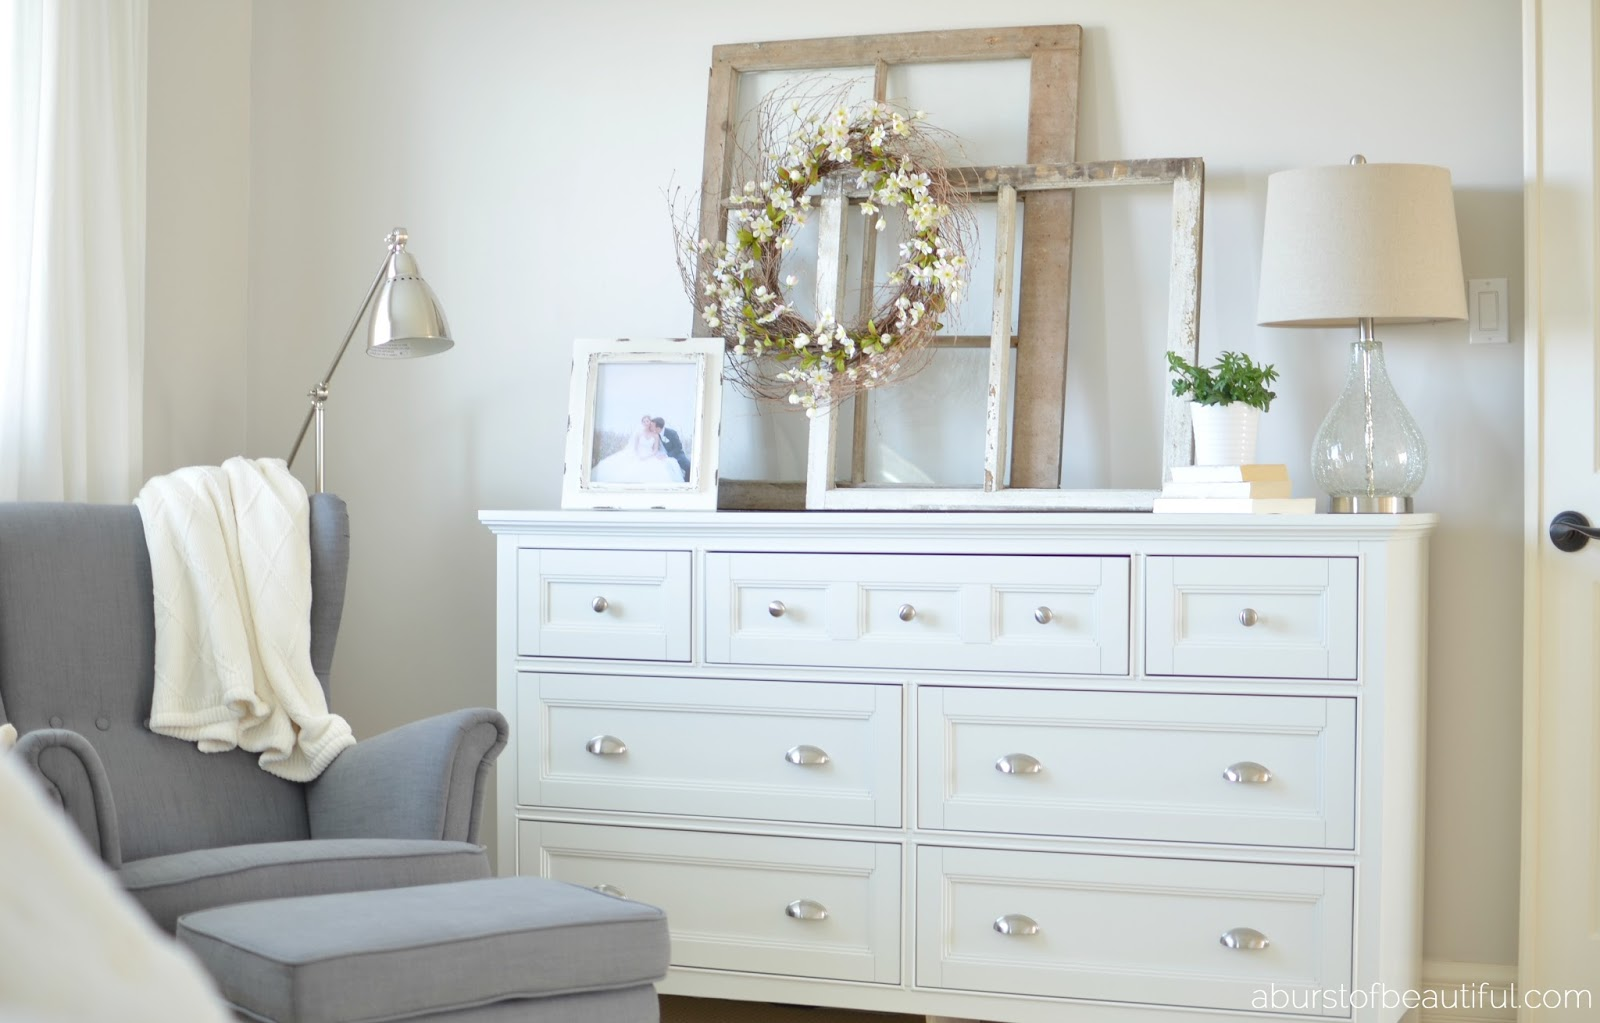 10 Beautiful Room Makeovers | Joy in Our Home